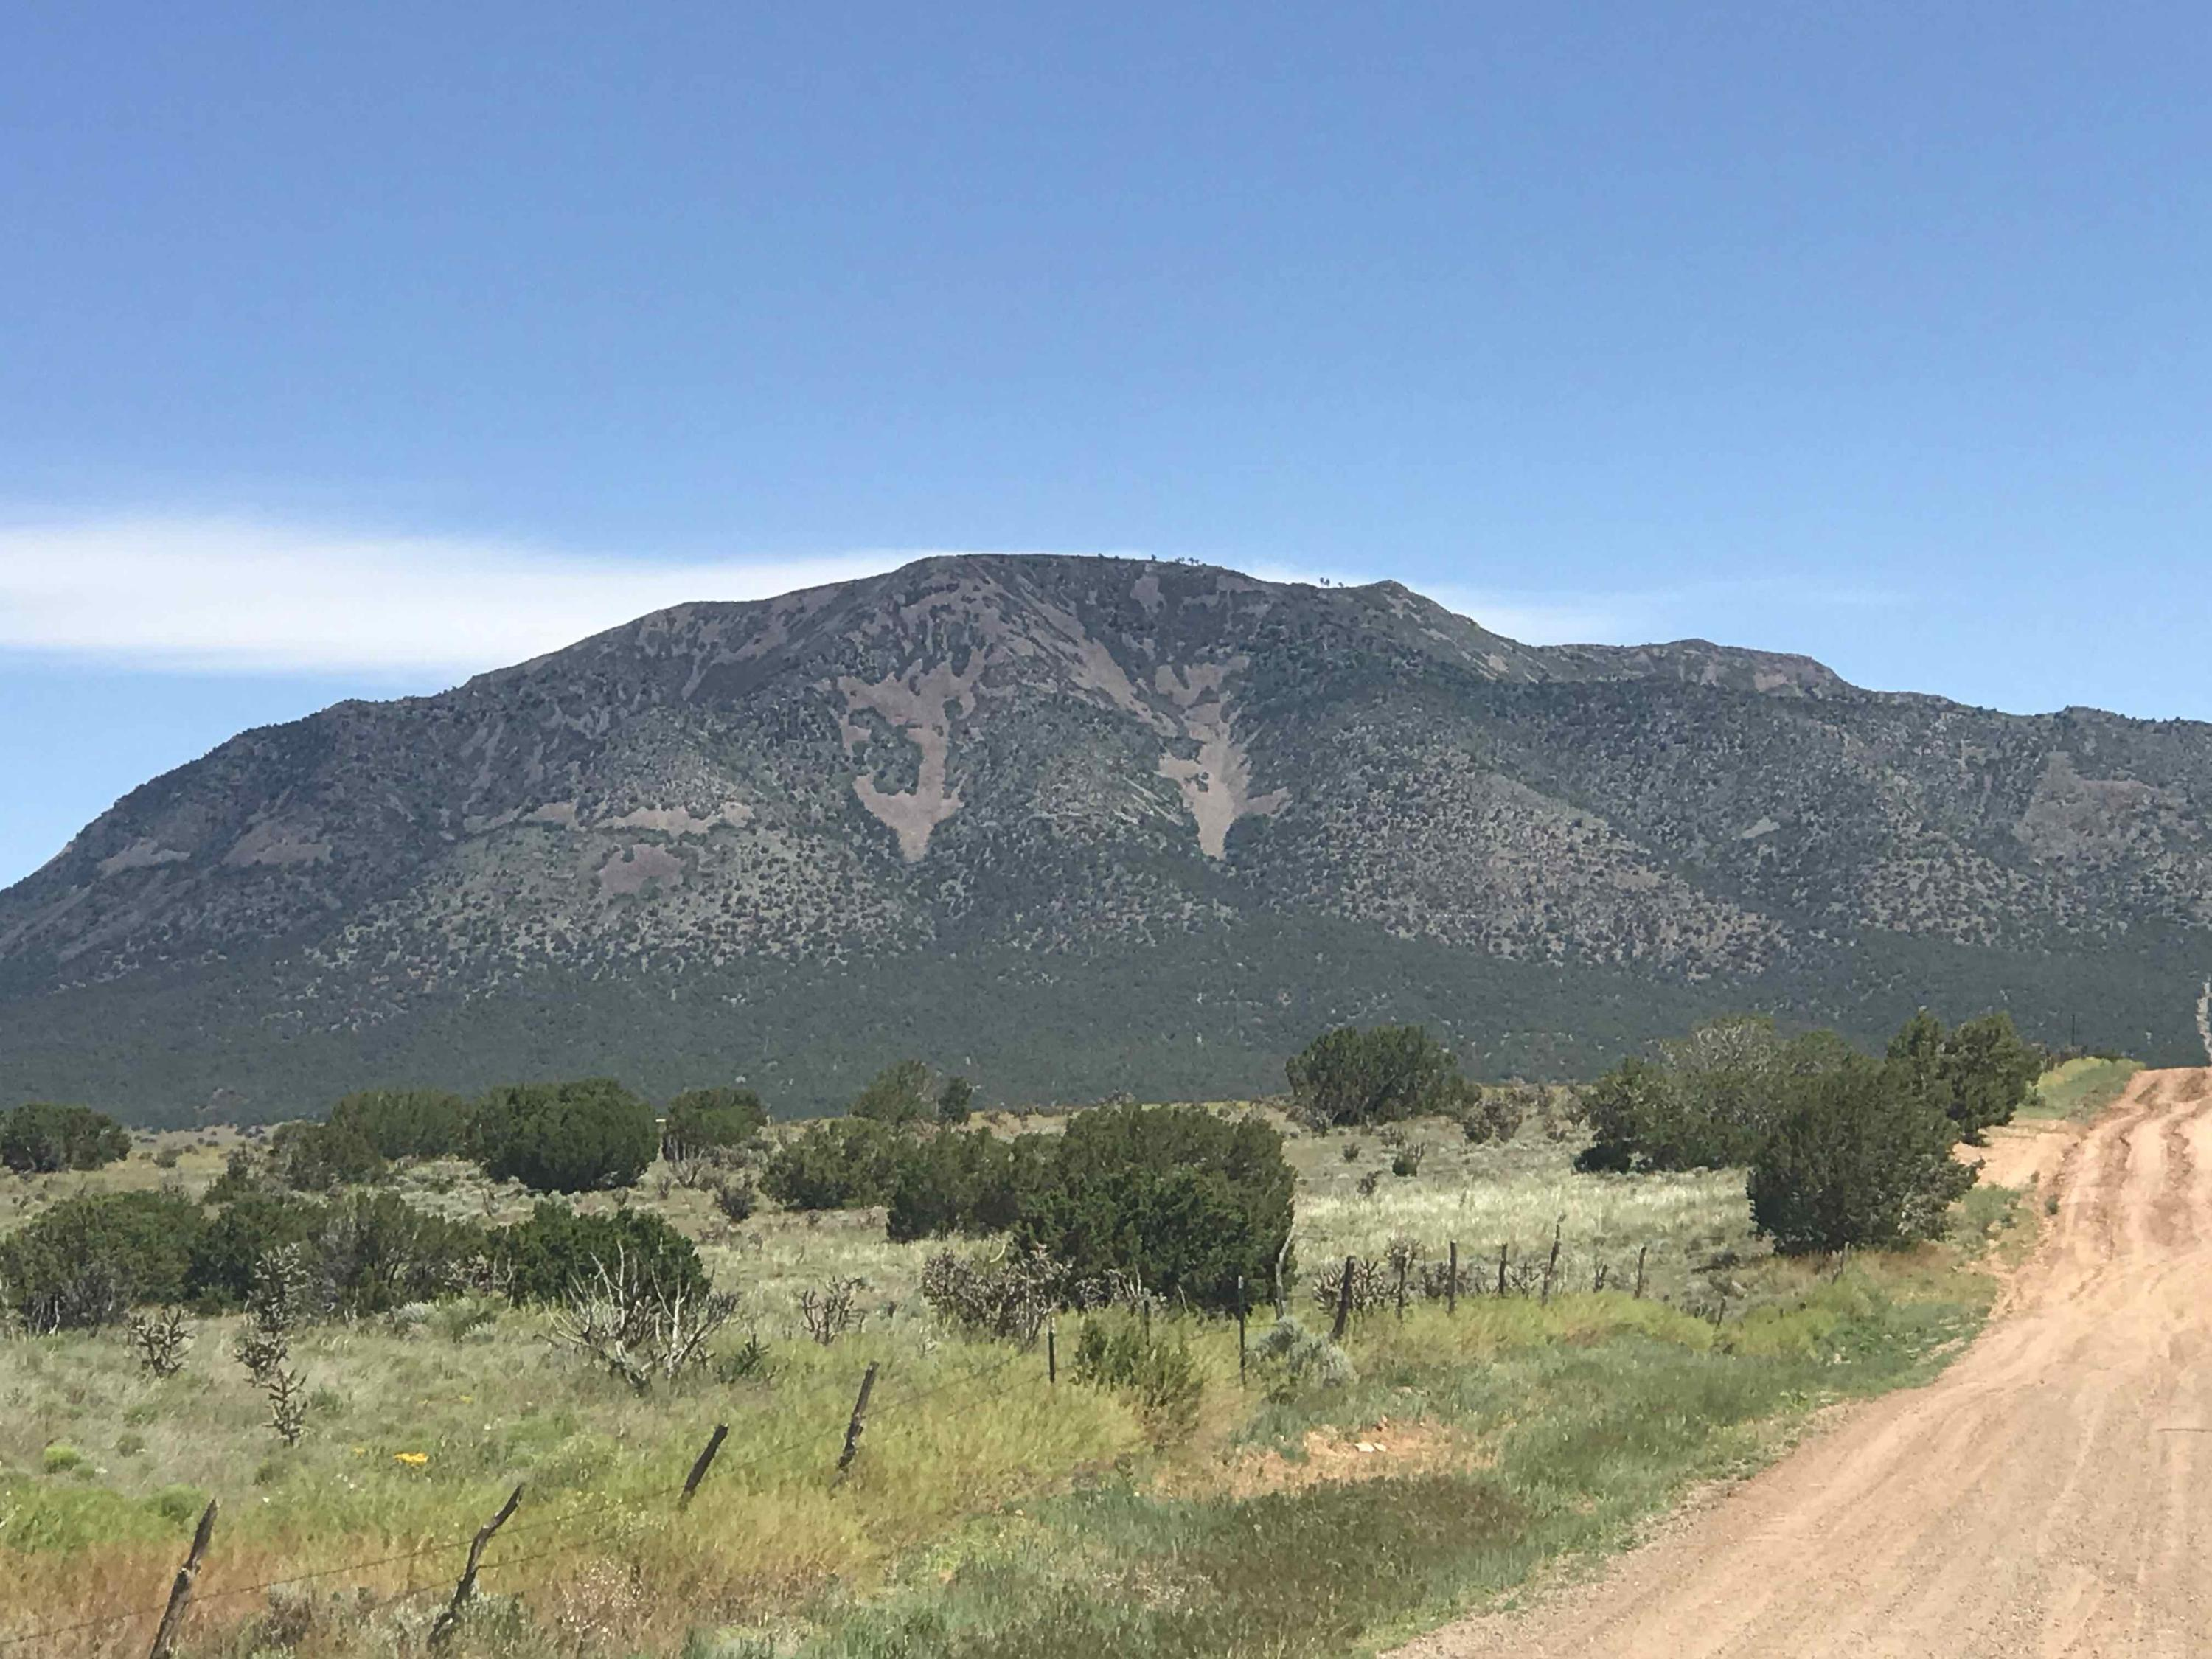 14 W Northland Court, Edgewood, NM 87015 - Edgewood, NM real estate listing